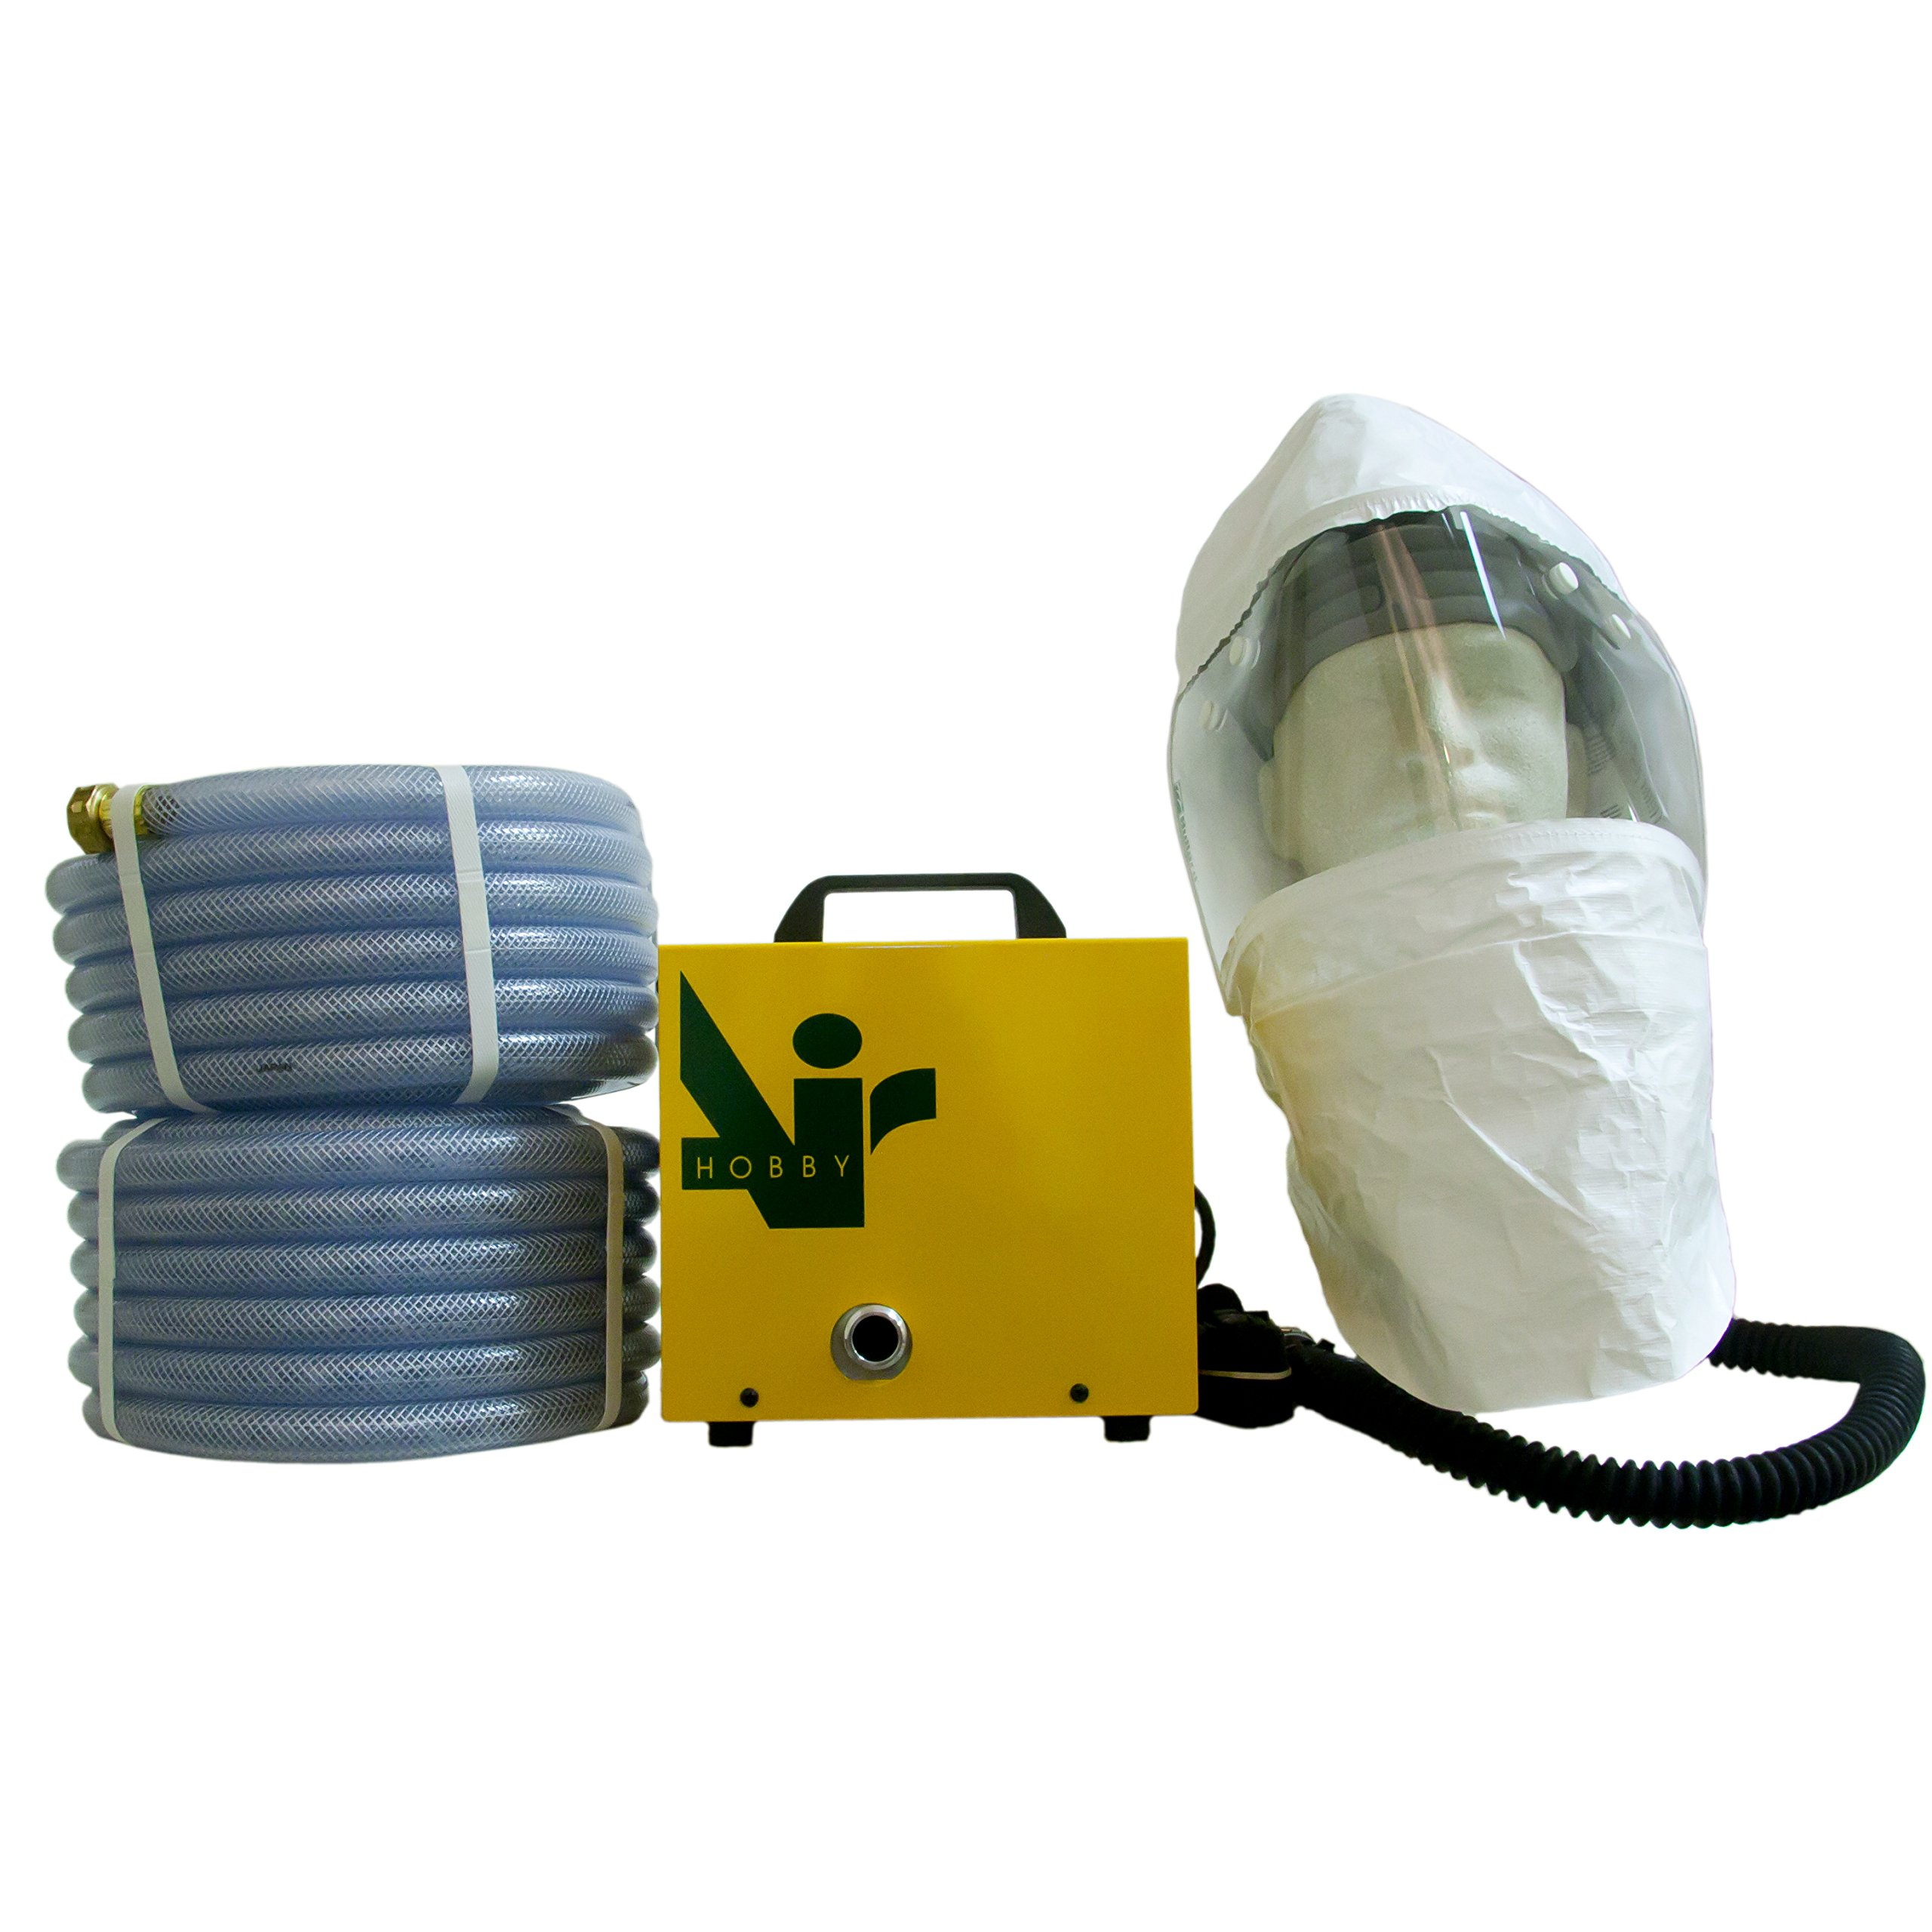 Hobbyair 2 with Air Supplied Painting Hood and 80' of Hose